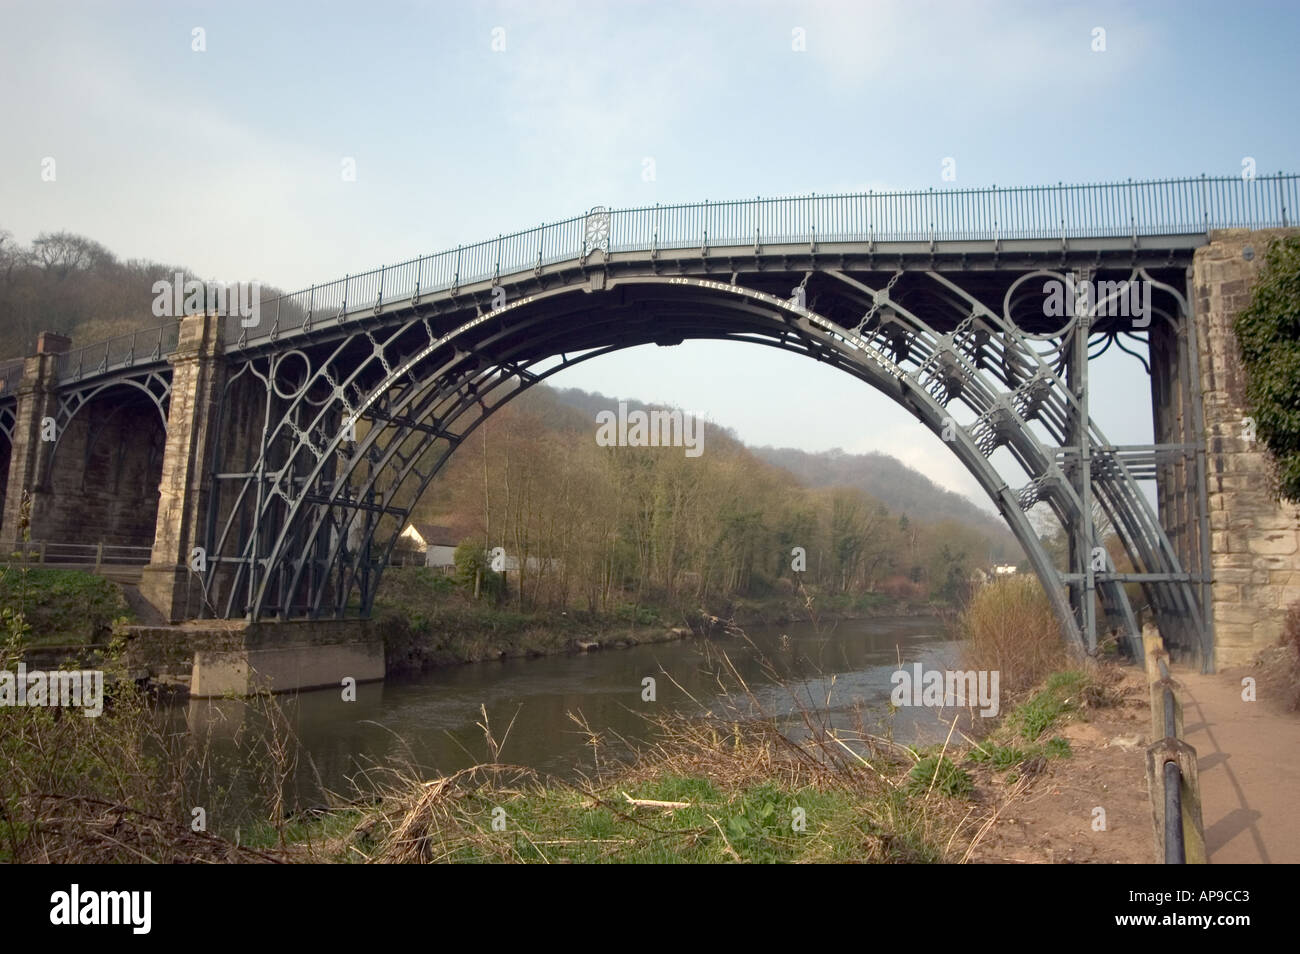 The Famous Ironbridge Spanning River Severn In Shropshire England